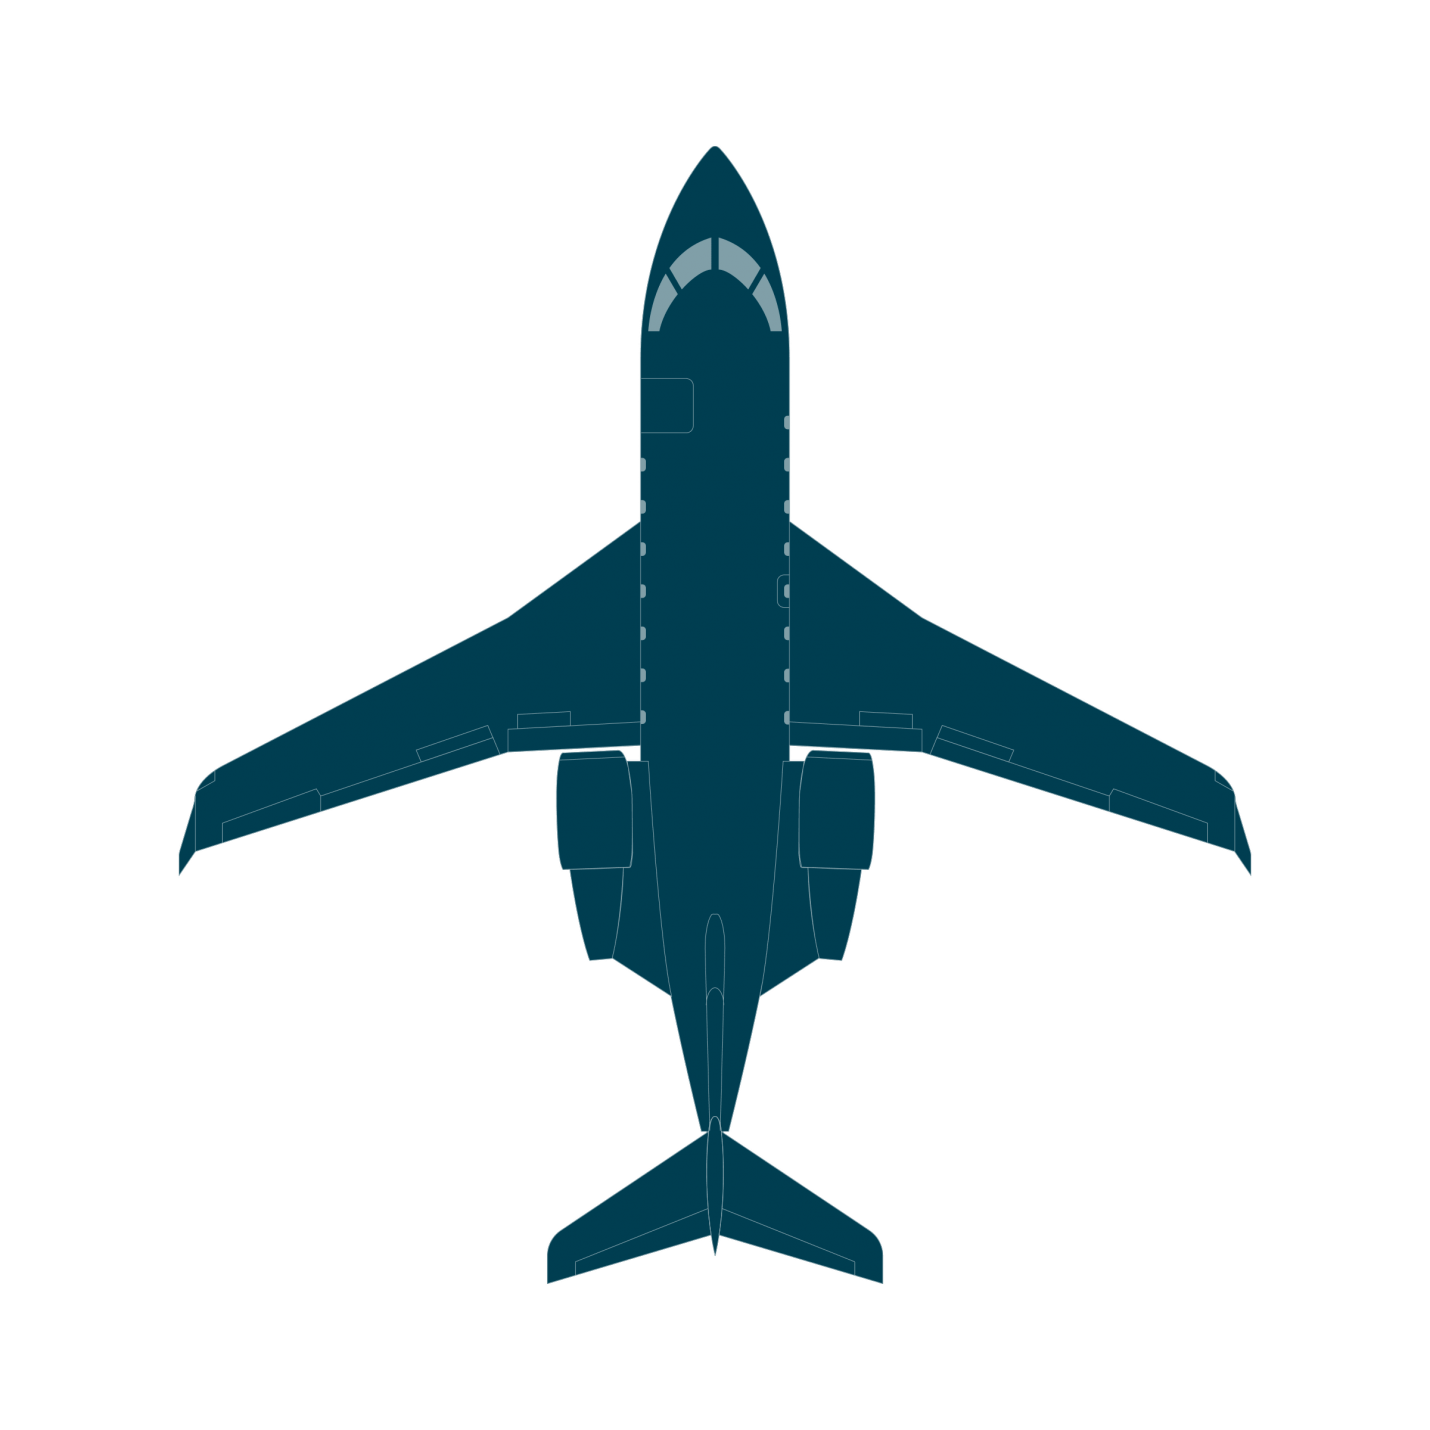 challenger 650 bombardier business aircraft Aircraft Headset Wiring challenger 650 top view cad